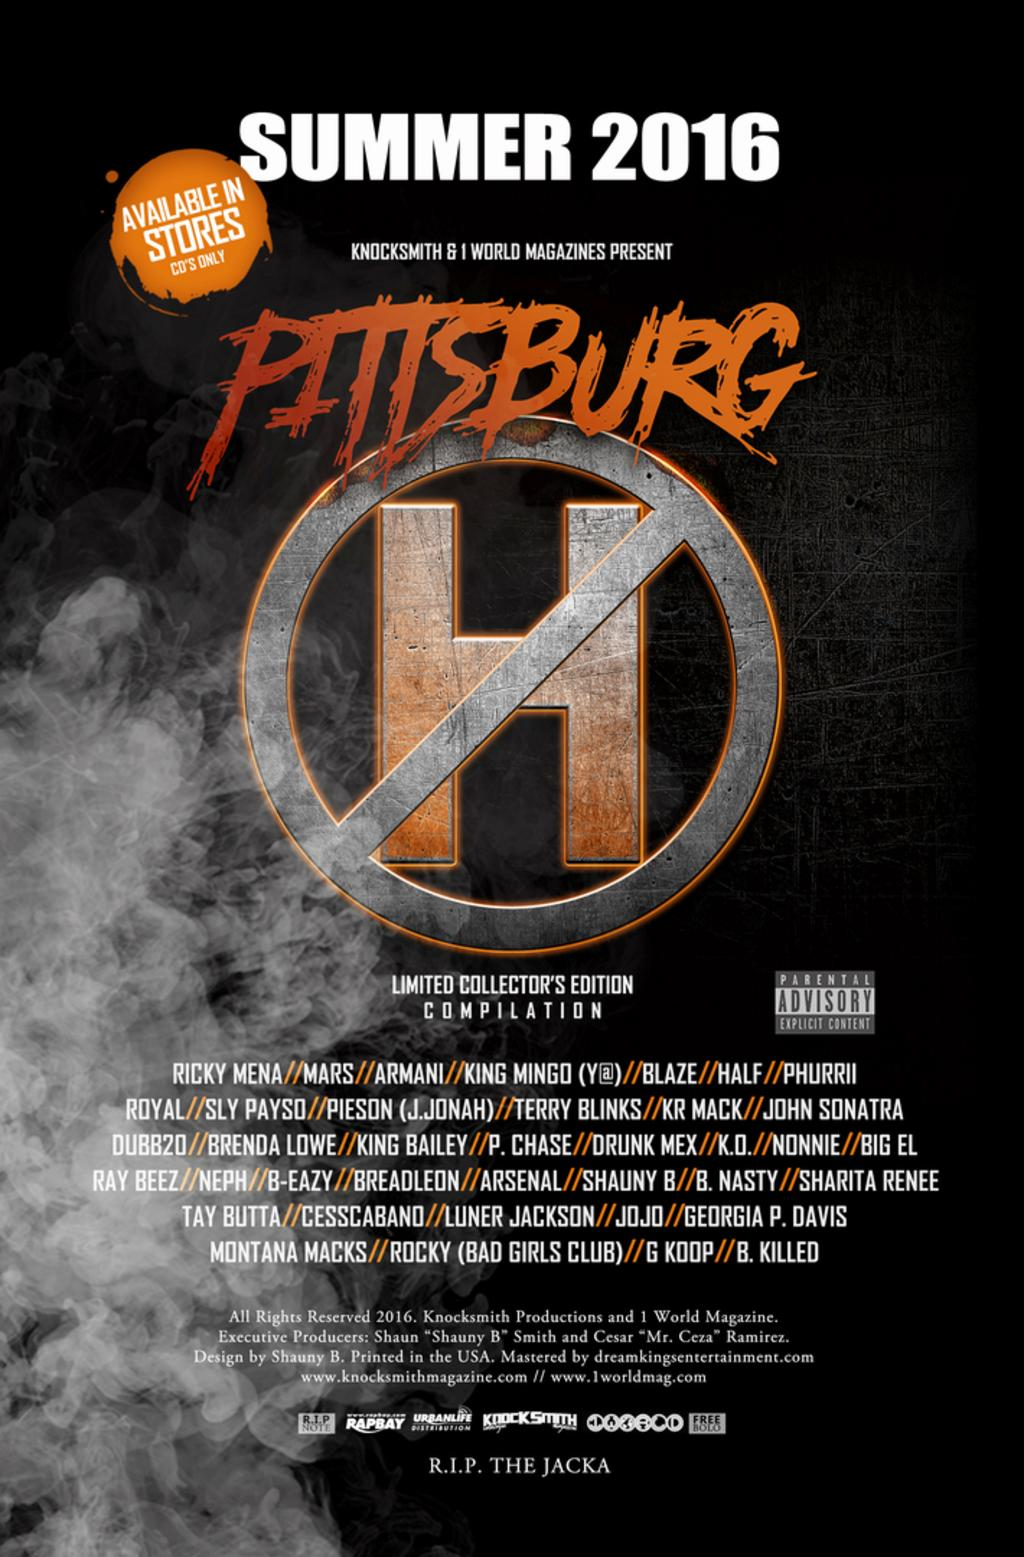 Pittsburg.... Pittsburg CA .....the one with NO H has found unity. Unlike other major cities, well known in the hip-hop industry pittsburg california has yet to really unite until now... The release of Pittsburg No H sparked some controversey but ultimately has brought the city together to focus on the great talent of its artist.